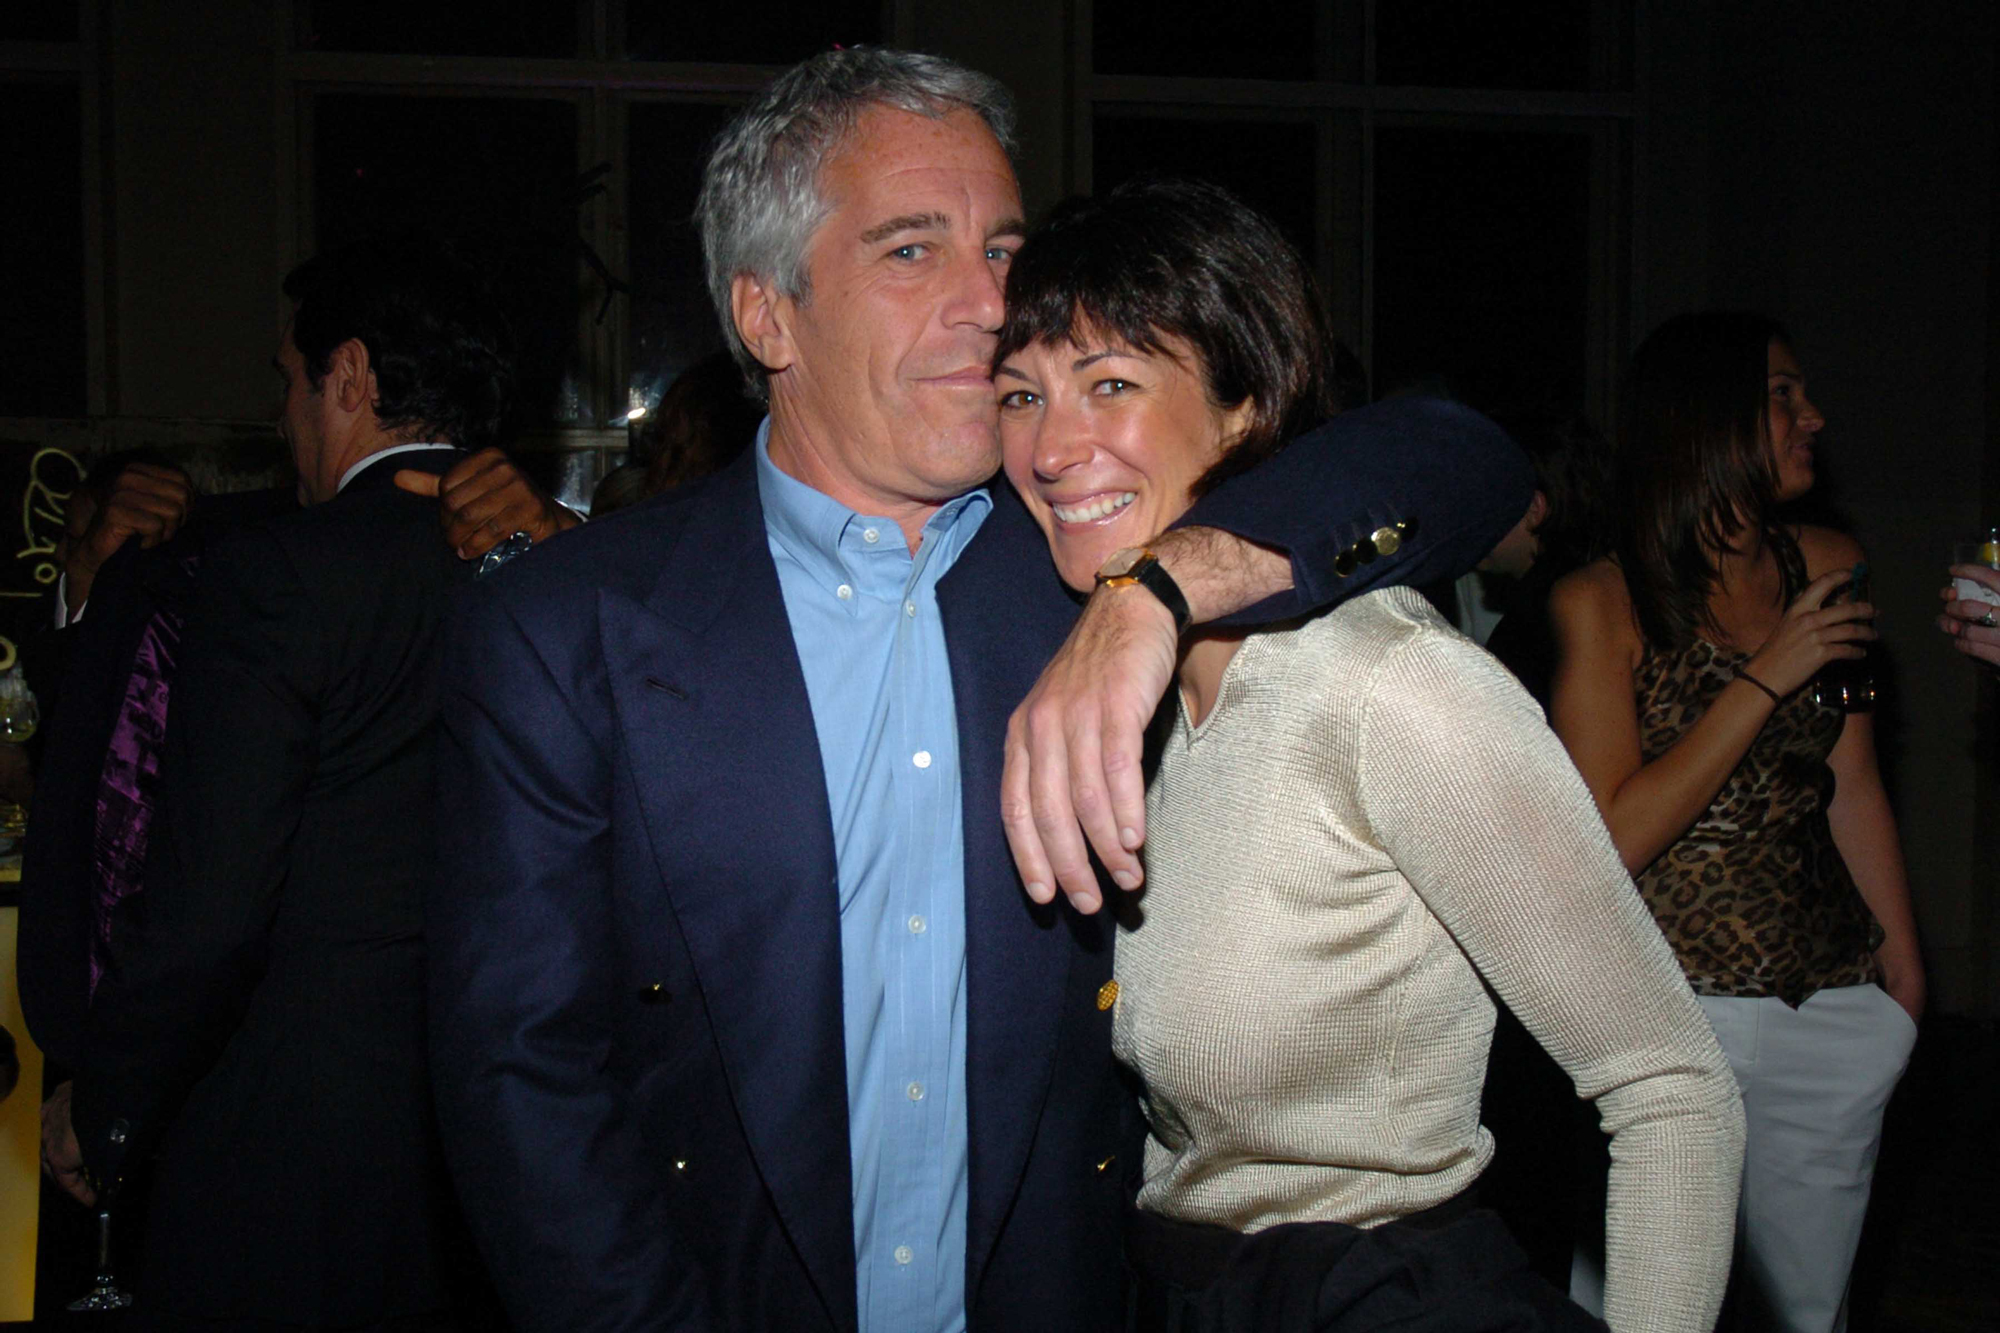 Ghislaine Maxwell transferred to a Brooklyn federal detention facility